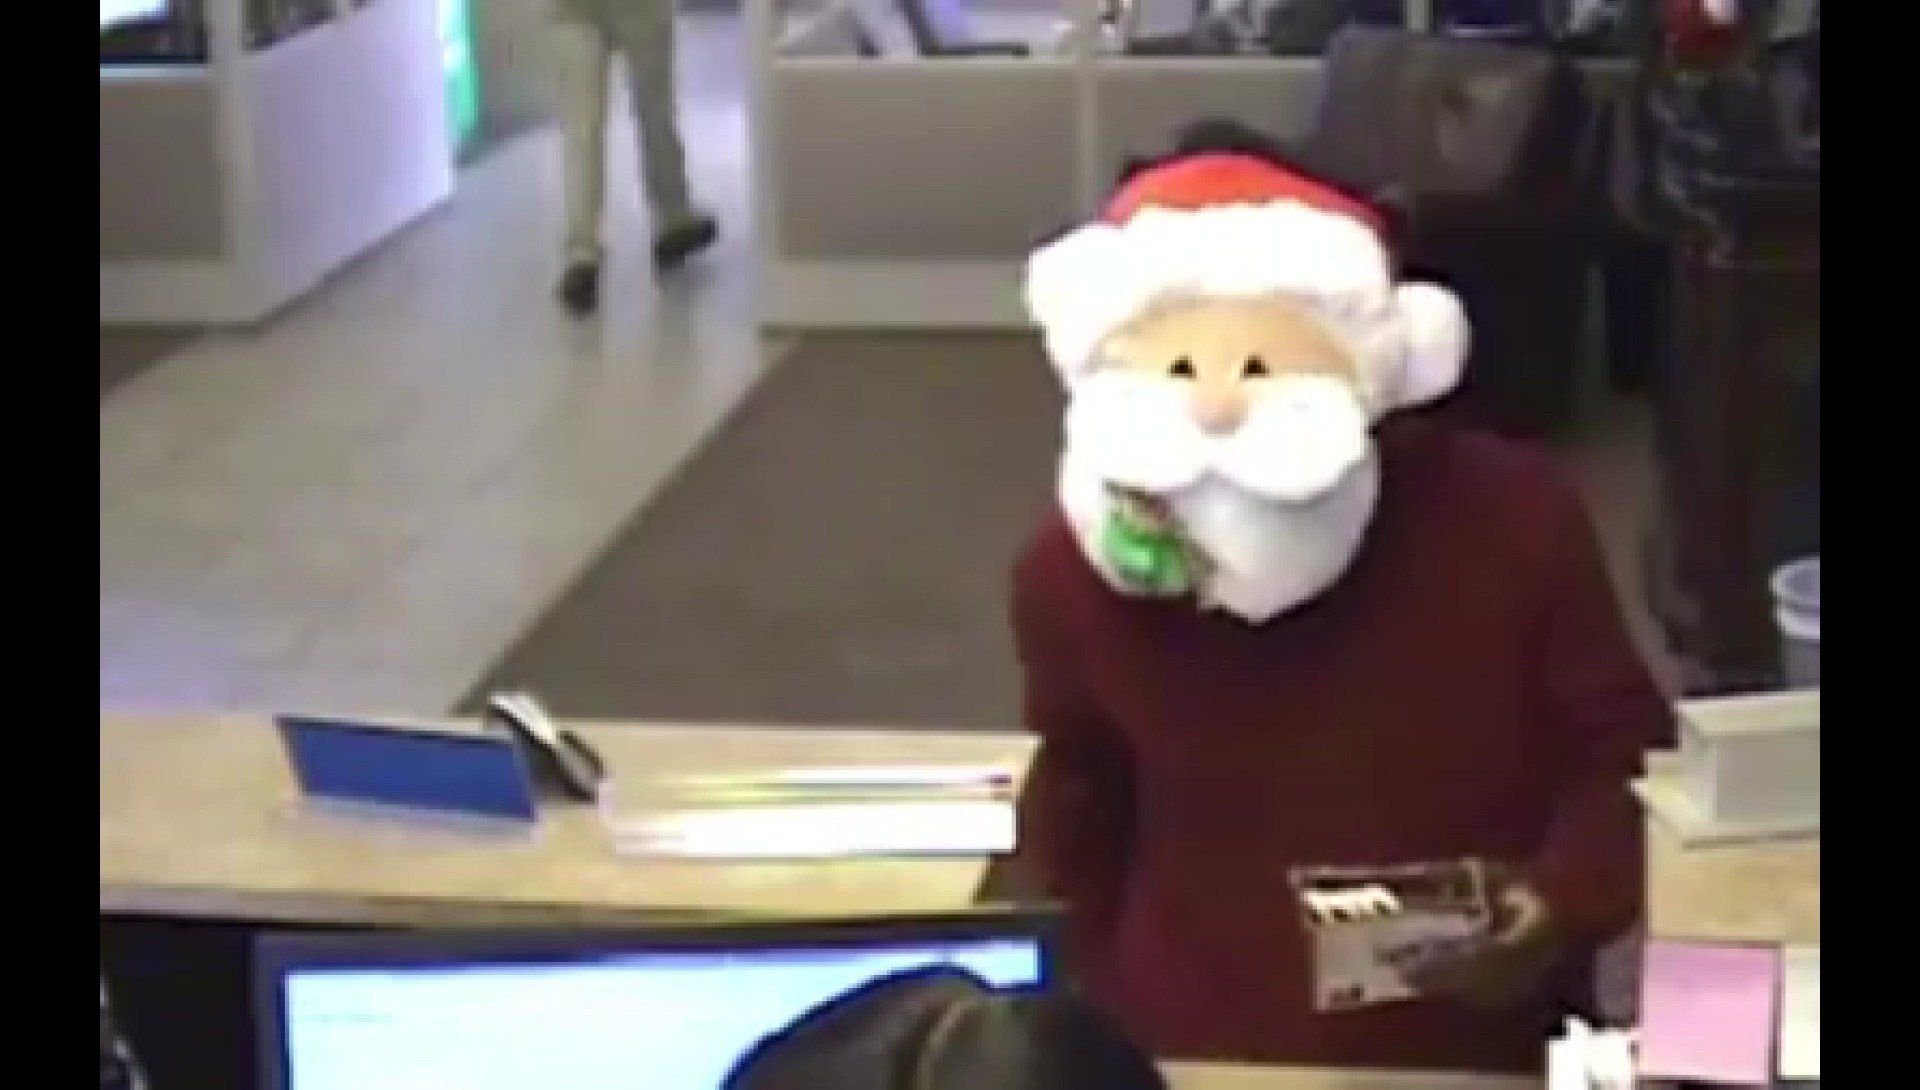 Man Who Robbed Bank In Santa Mask Handed Out Candy Canes